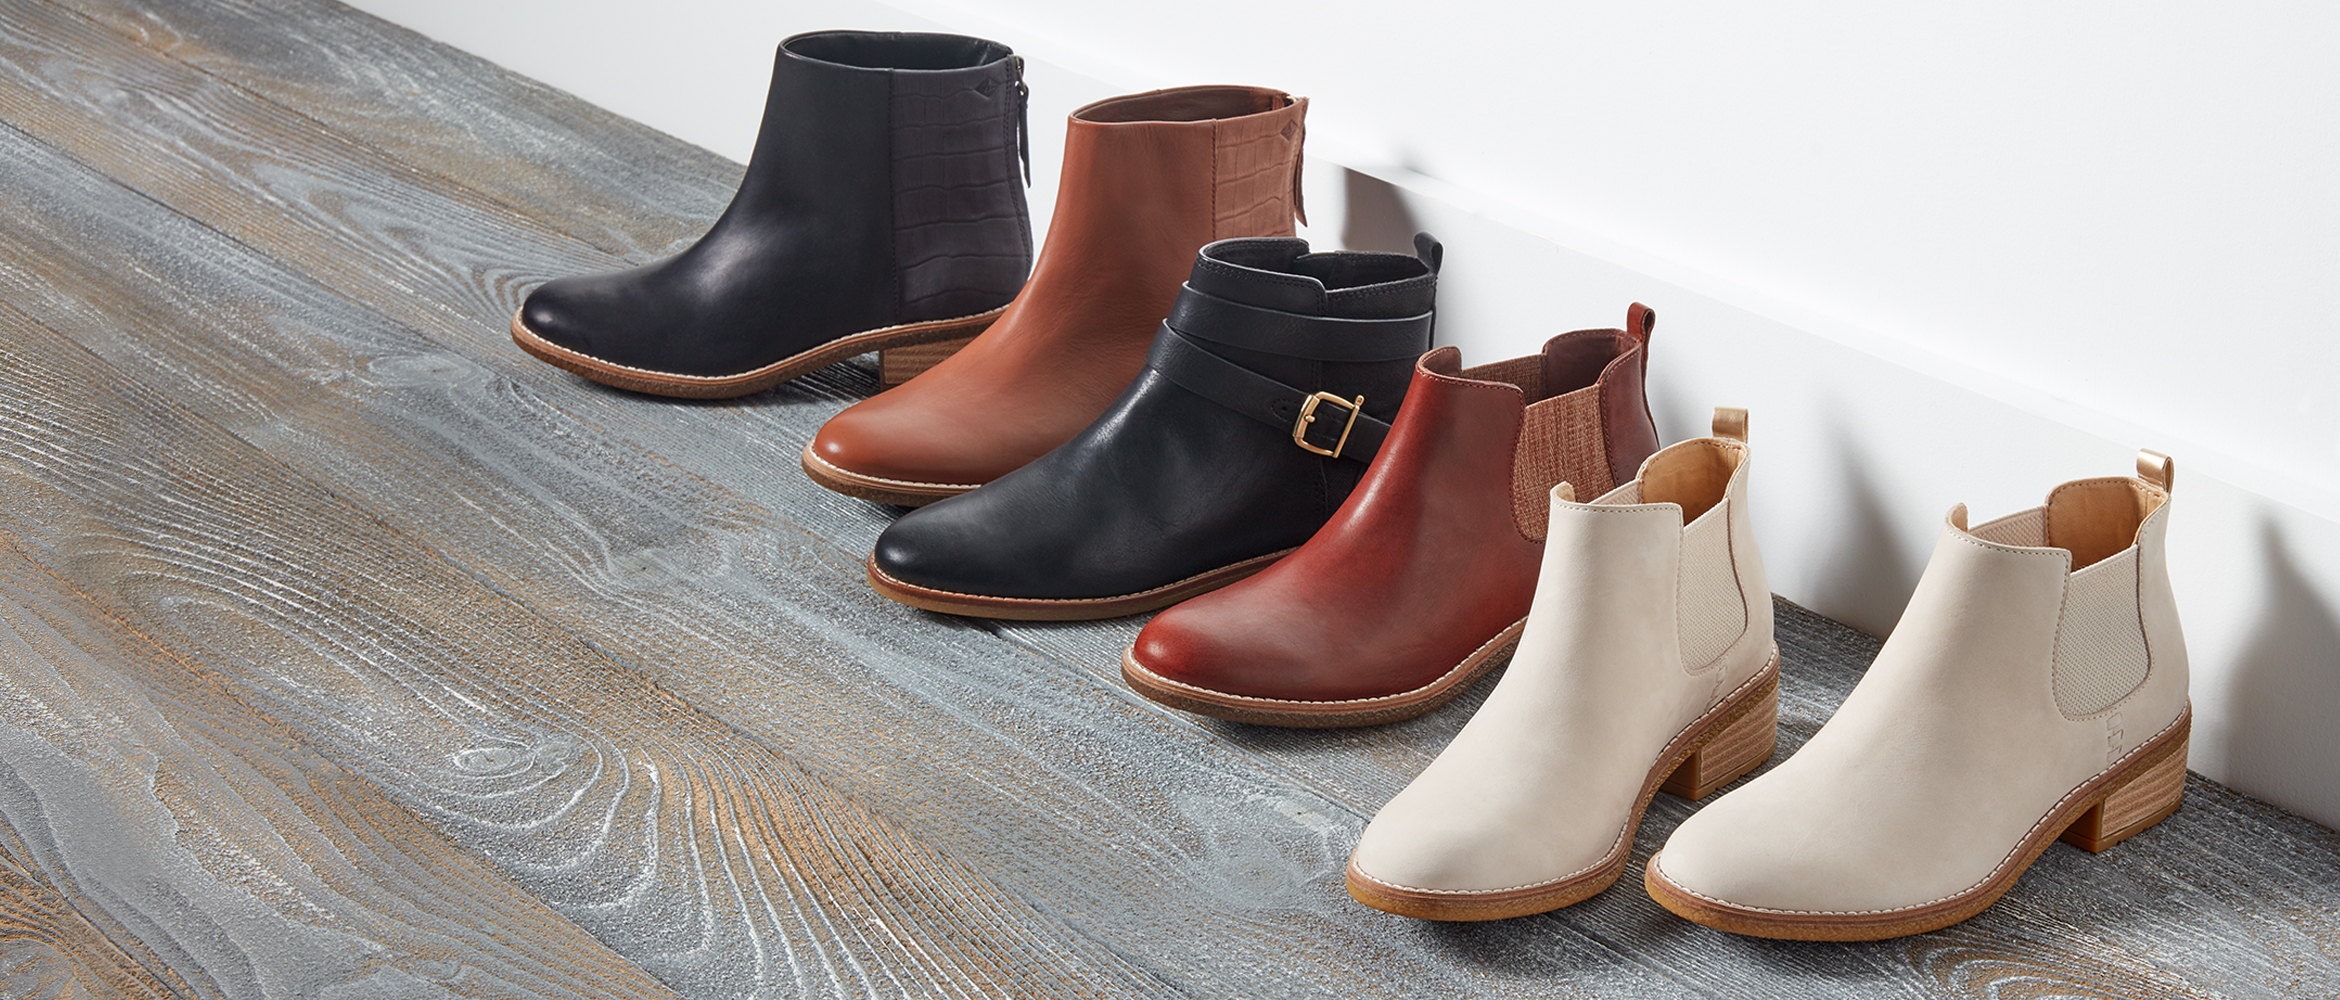 Fashion boots lined up long a white wall with a wood floor.